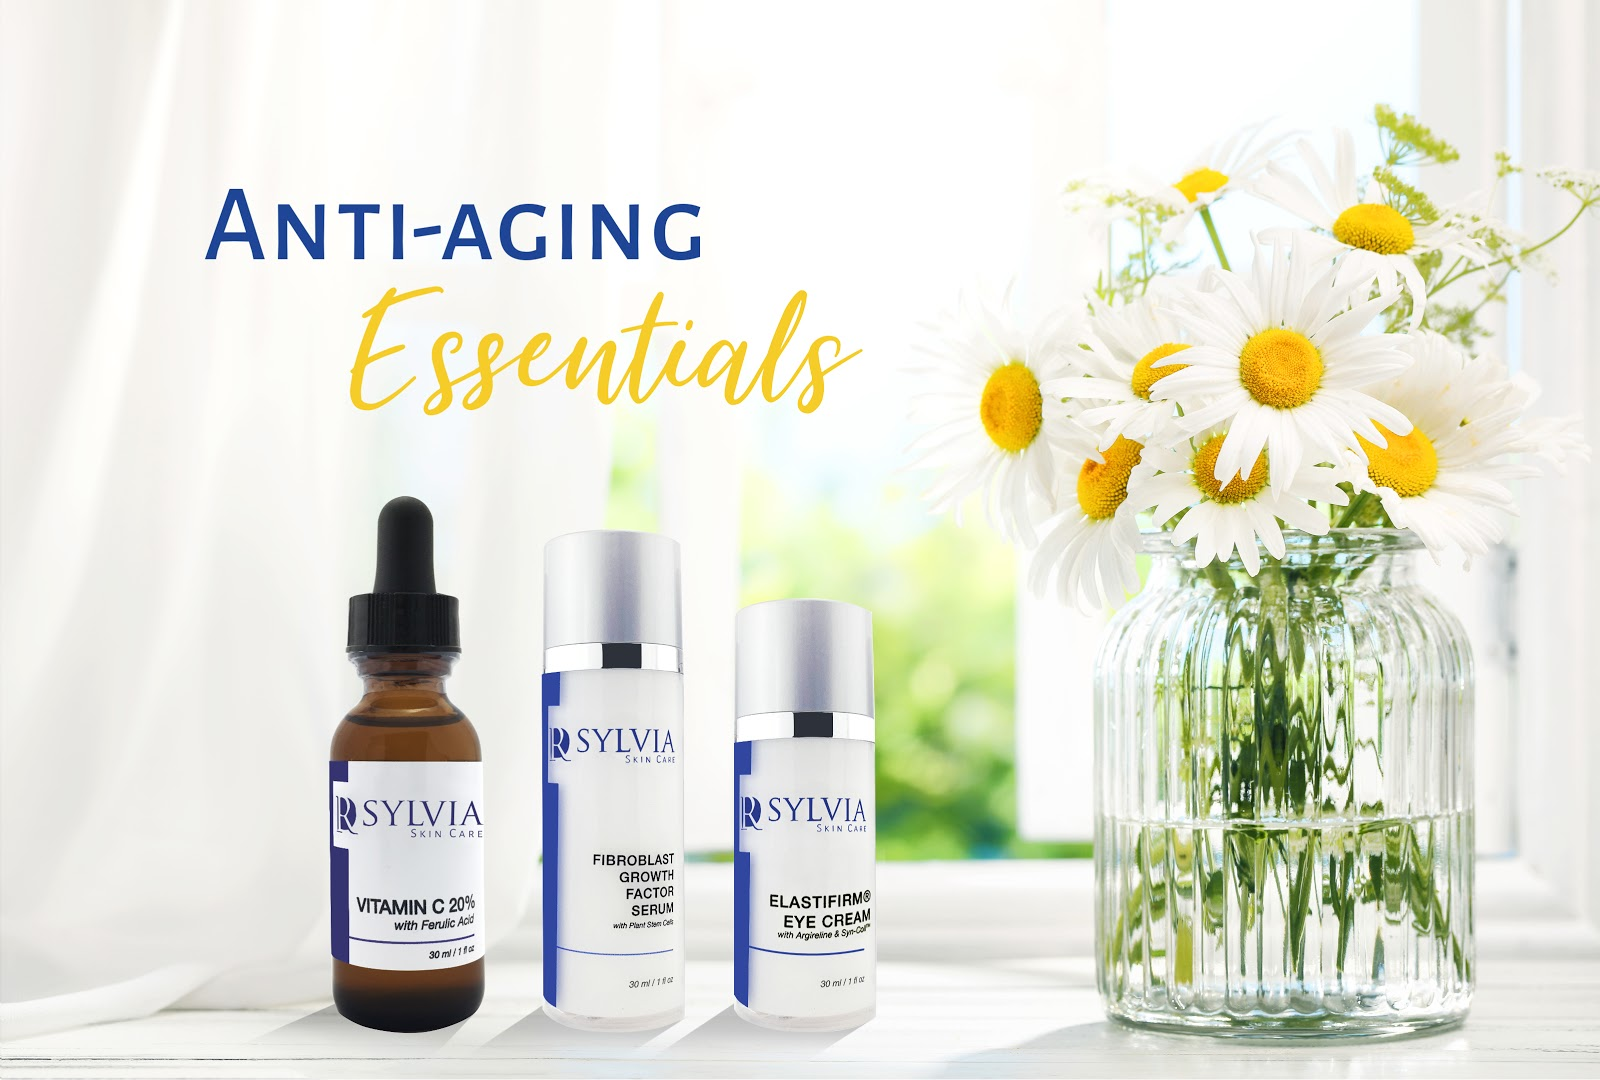 Anti-Aging Skin Care Essentials